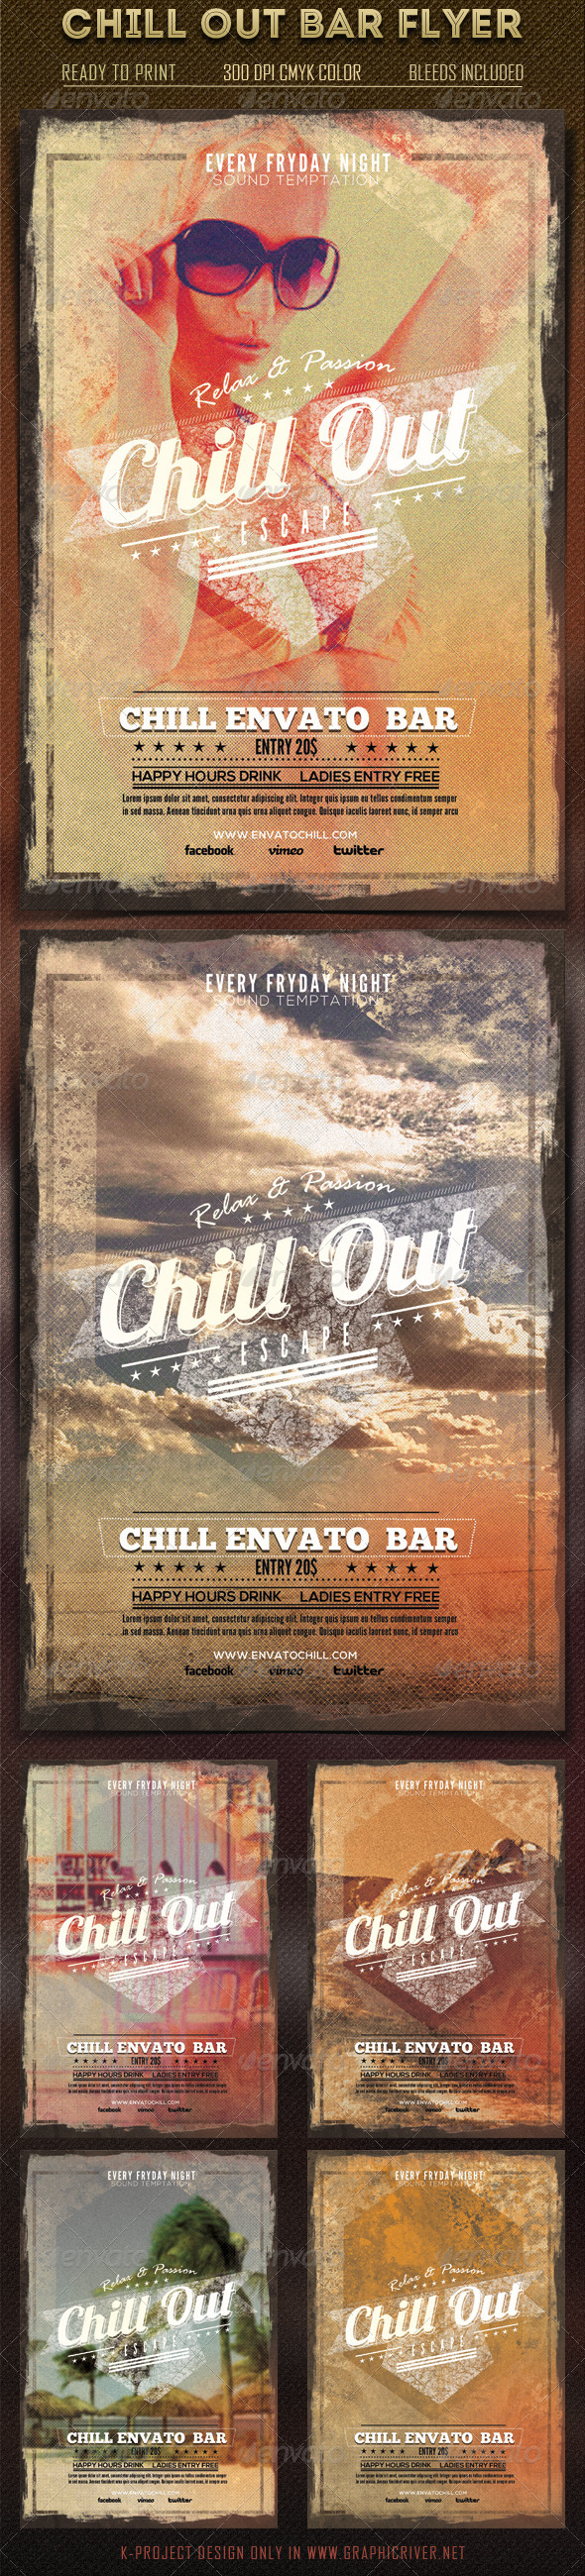 Chill Out Bar Flyer - Clubs & Parties Events